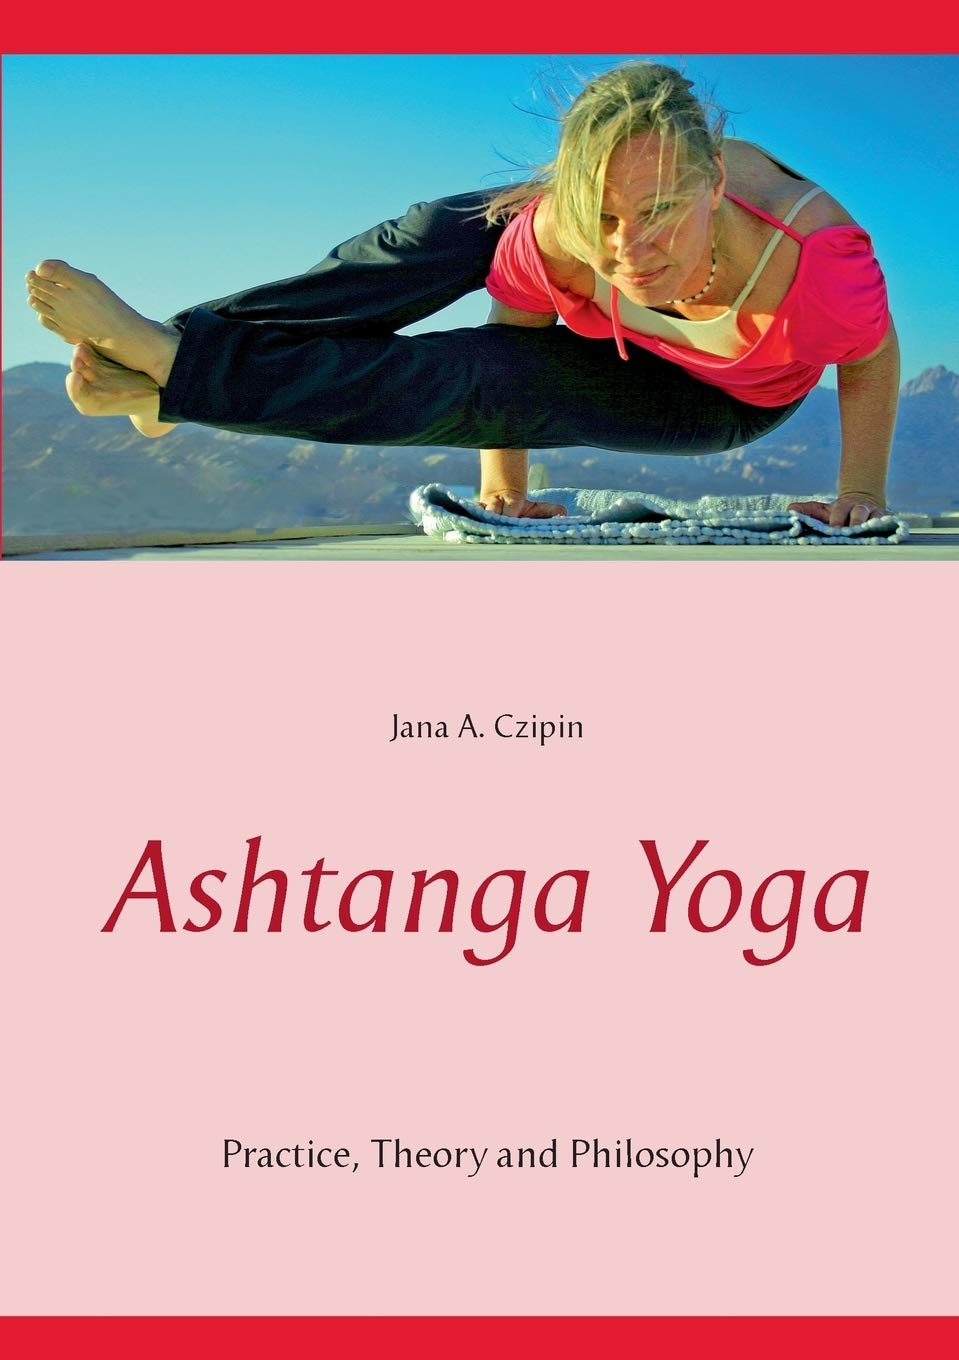 Ashtanga Yoga: Jana A. Czipin: 9783734765421: Amazon.com: Books